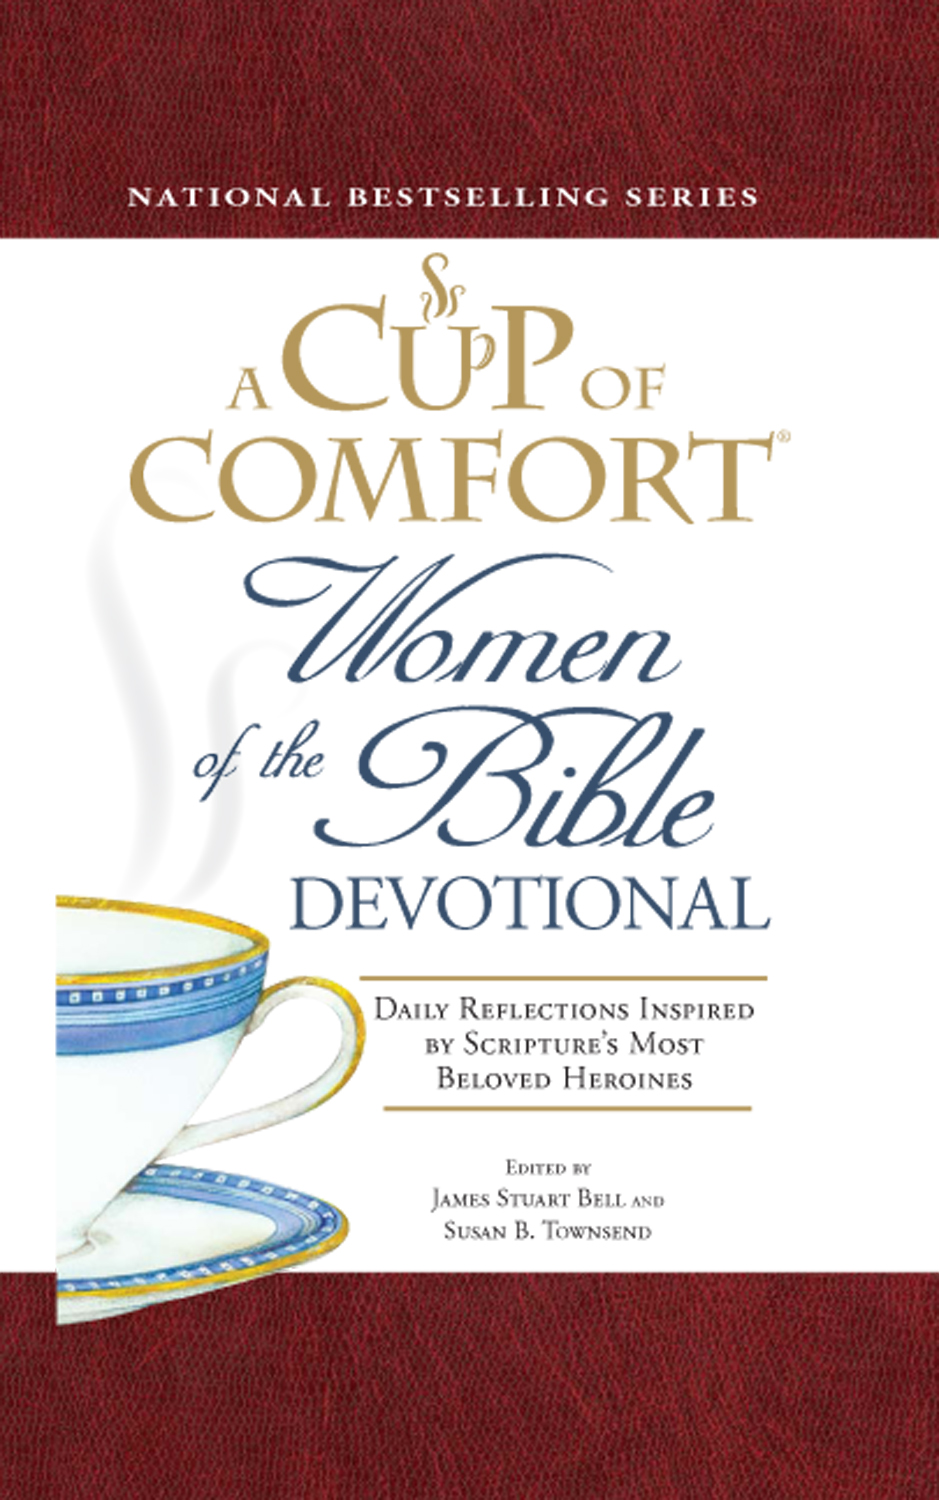 A Cup of Comfort Women of the Bible Devotional: Daily Reflections Inspired by Scripture's Most Beloved Heroines